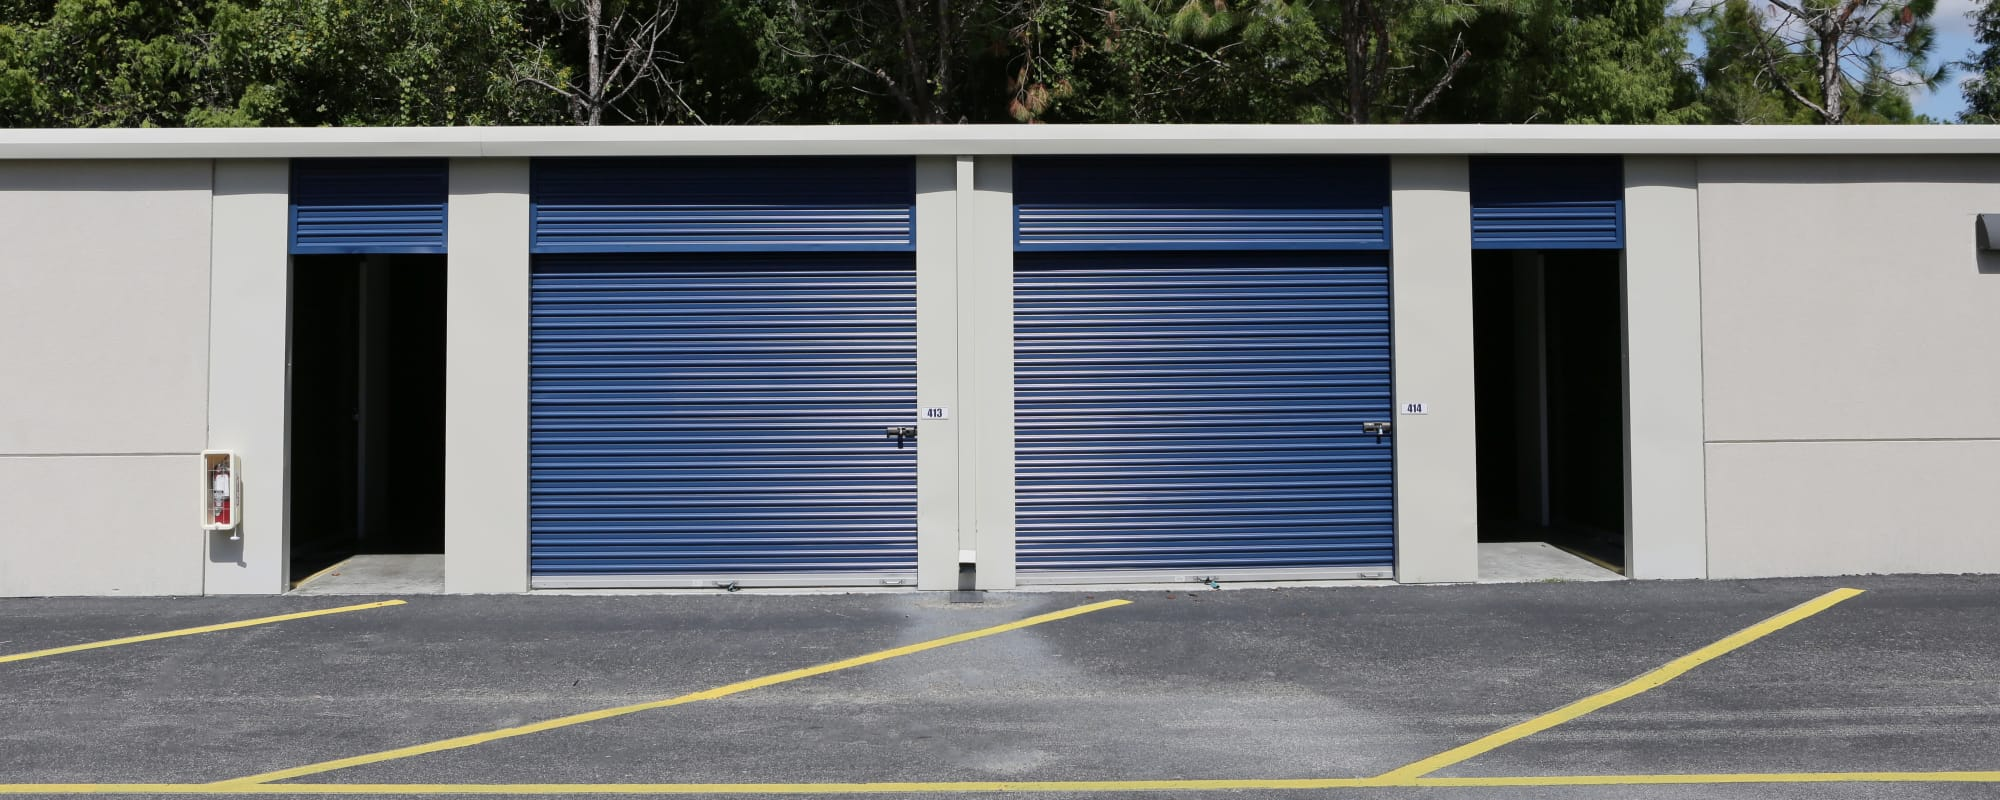 Reviews of Midgard Self Storage in Bradenton, Florida